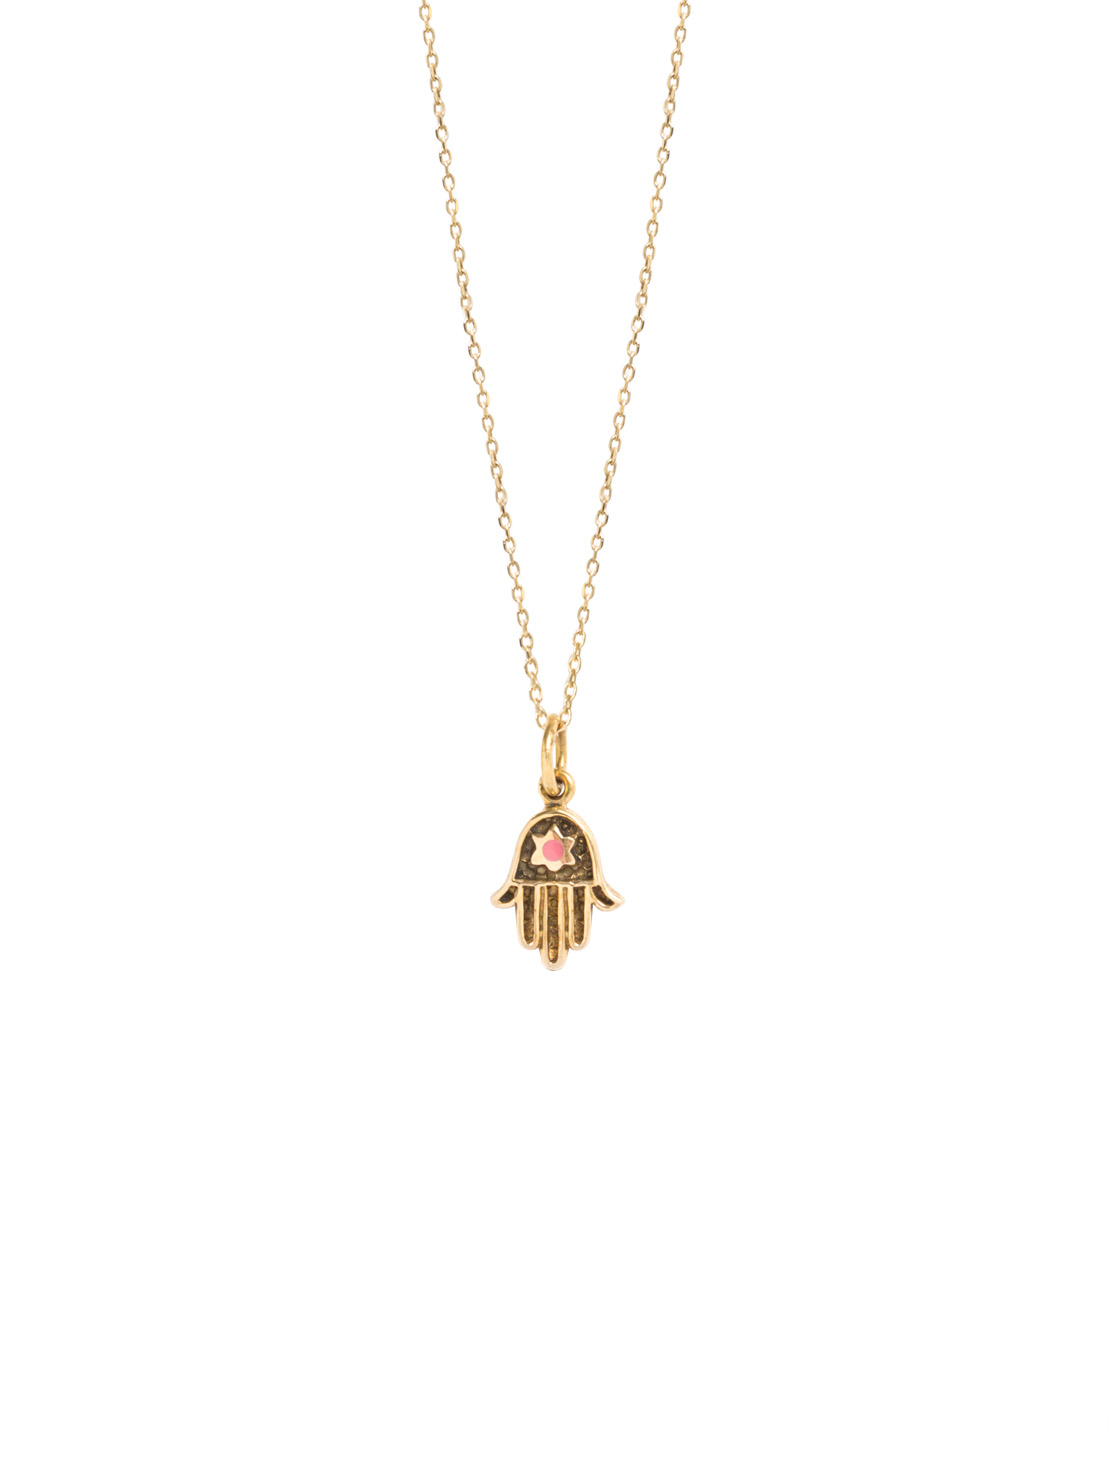 Tiny Gold Fatima Hand On Trace Chain